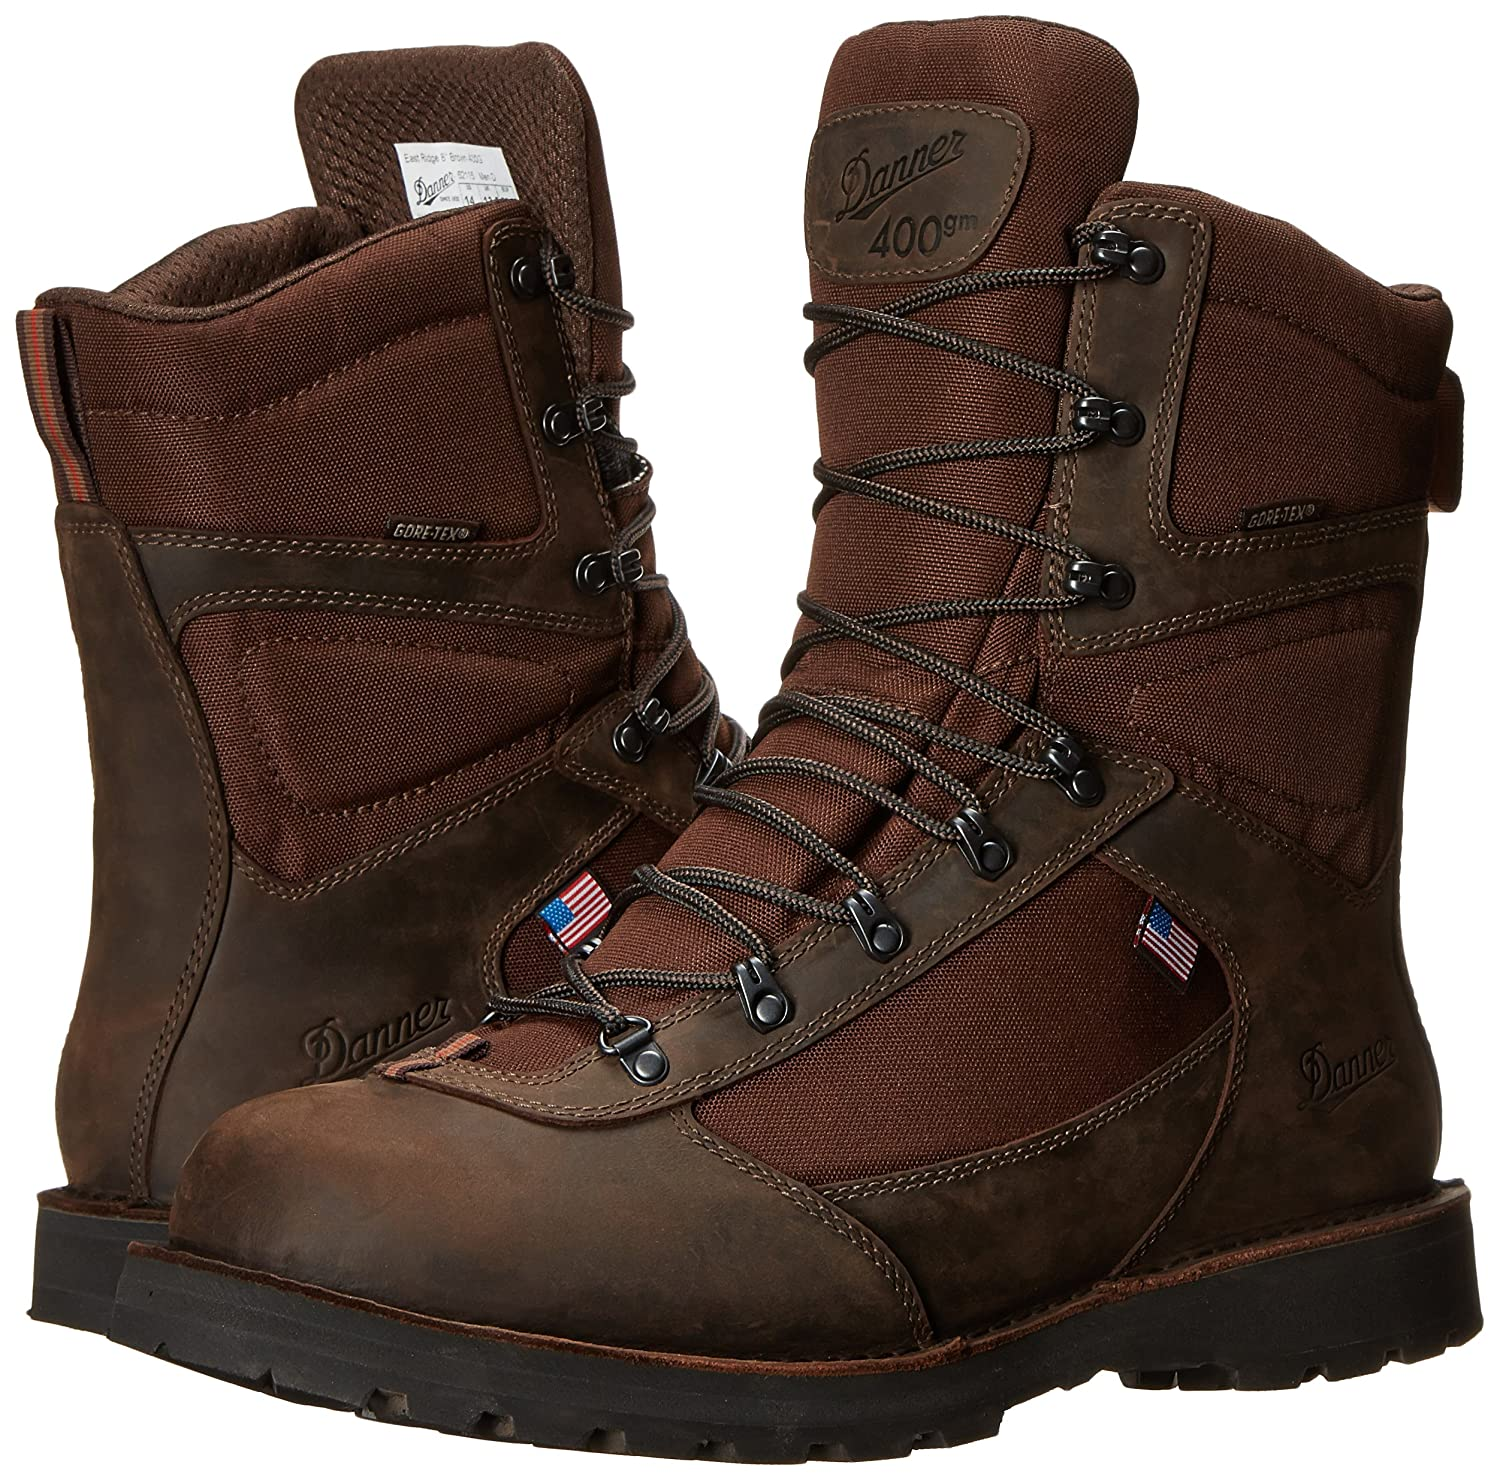 men's 8 inch hiking boots